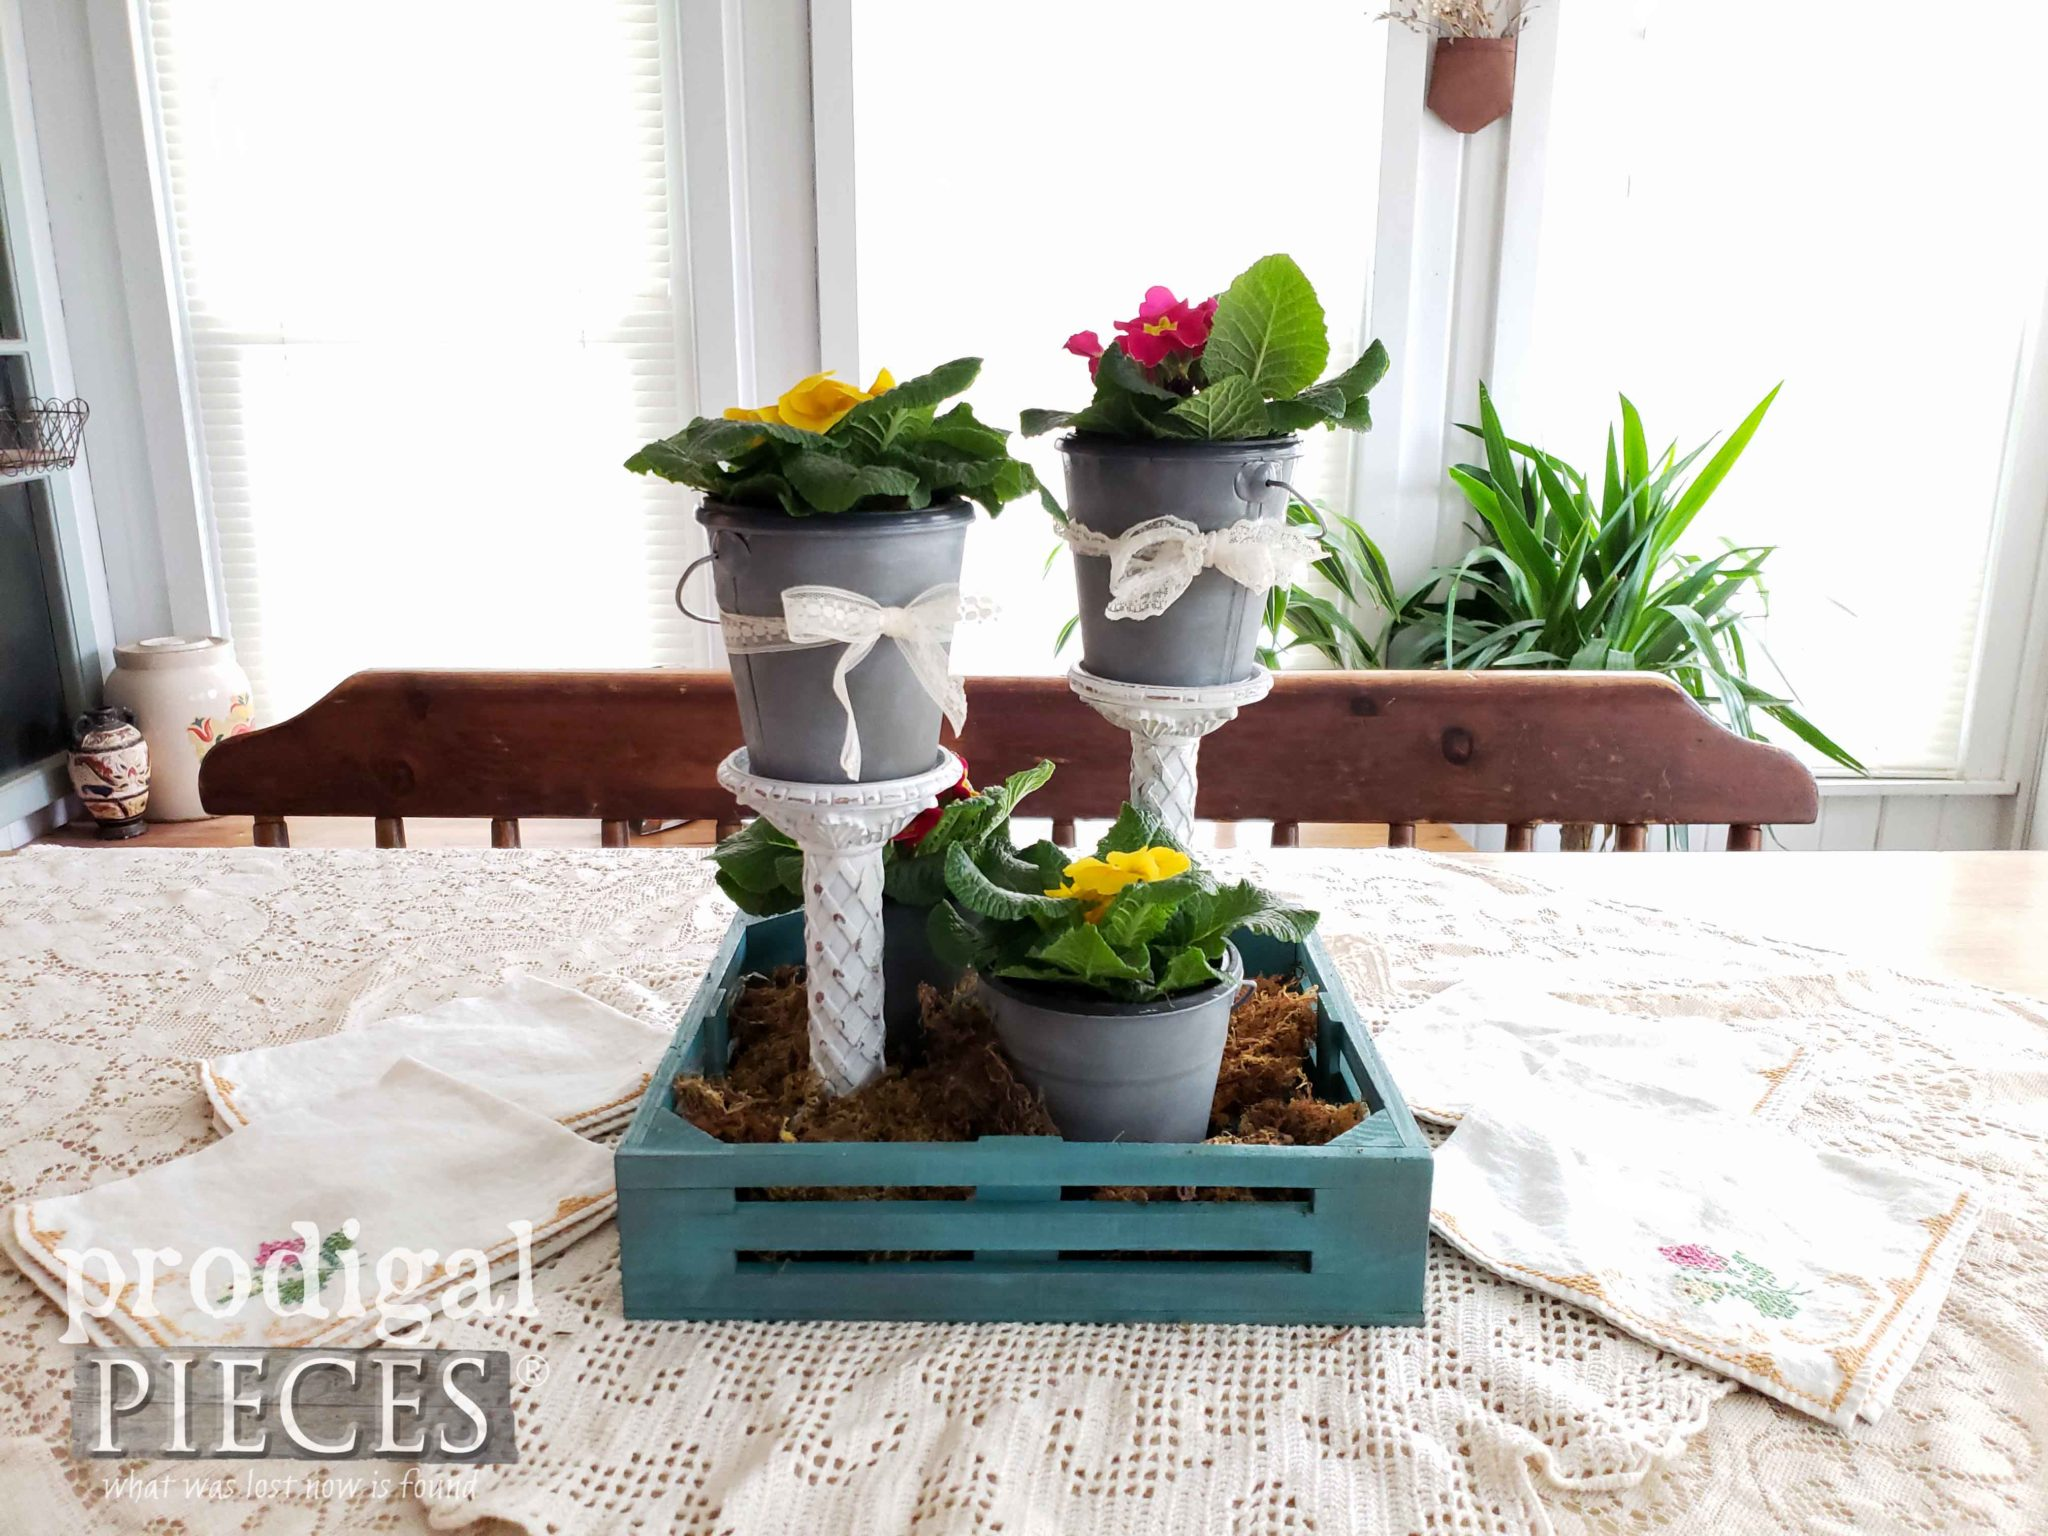 Beautiful Upcycled Spring Centerpiece with Video Tutorial by Larissa of Prodigal Pieces | prodigalpieces.com #prodigalpieces #diy #home #homedecor #farmhouse #vintage #spring #homedecorideas